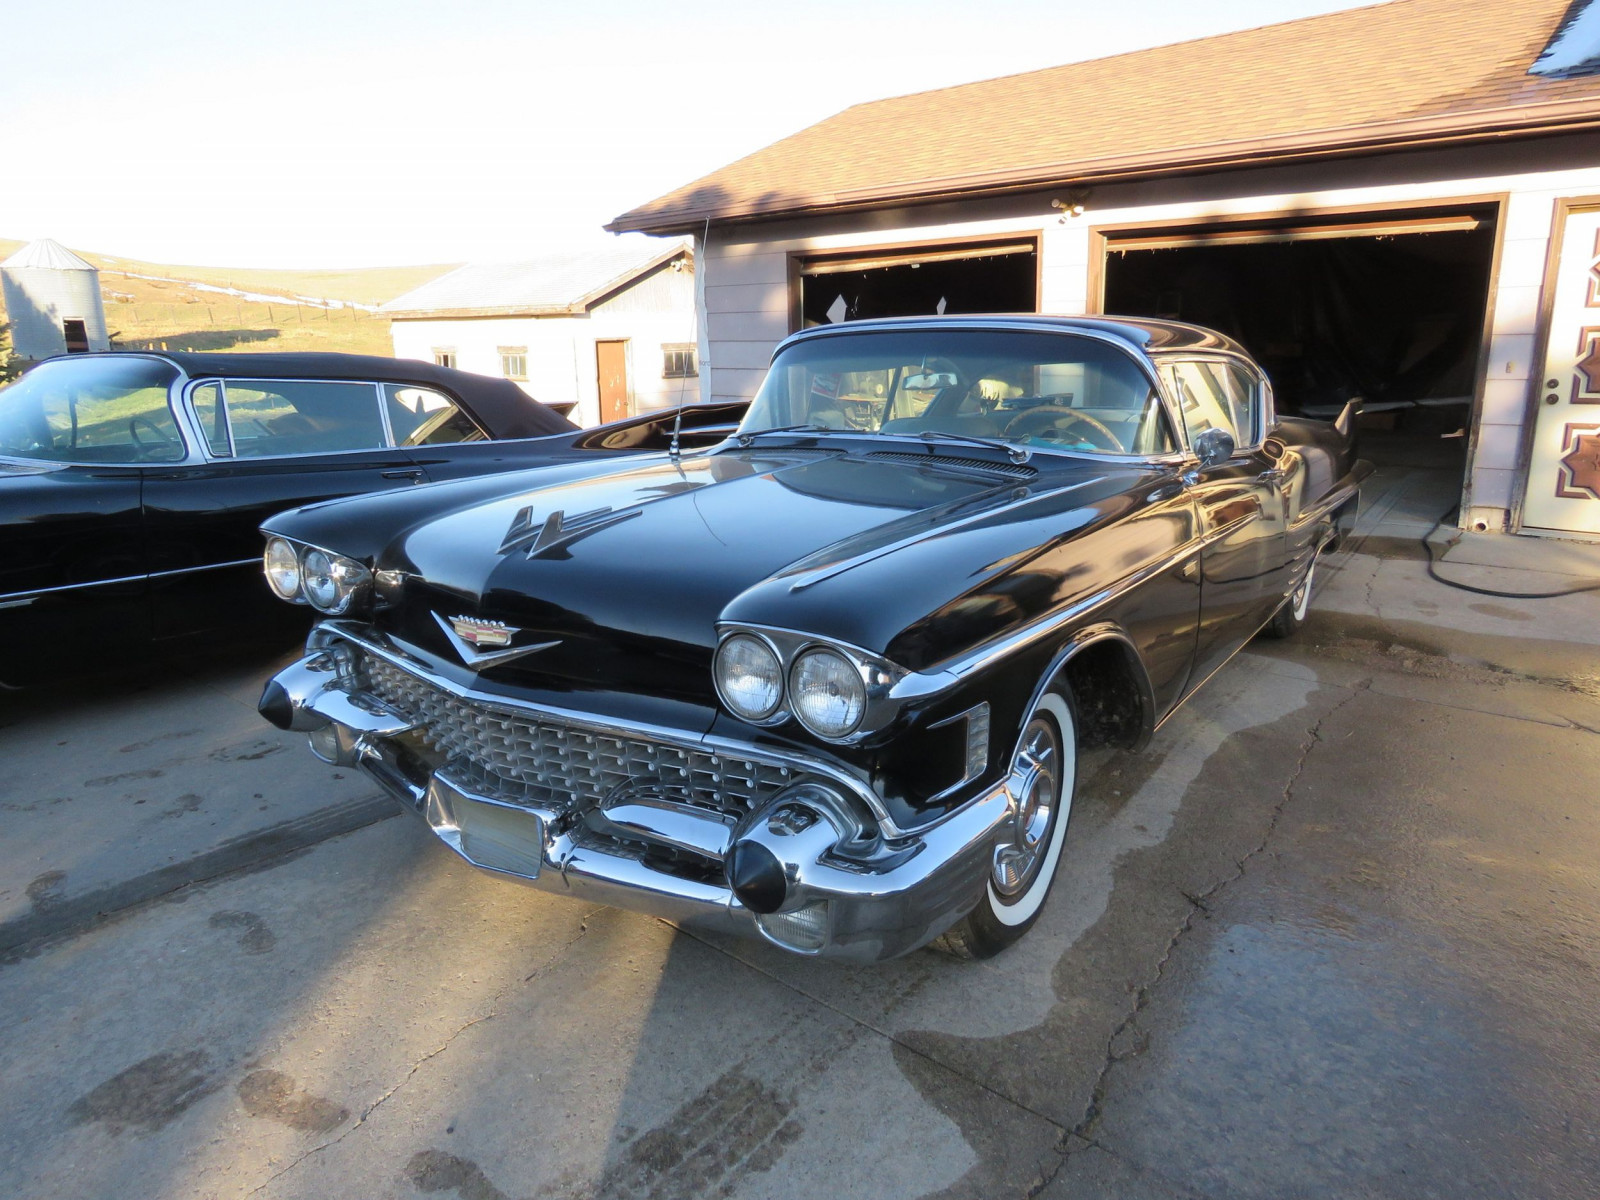 1958 Cadillac Coupe DeVille - Image 3